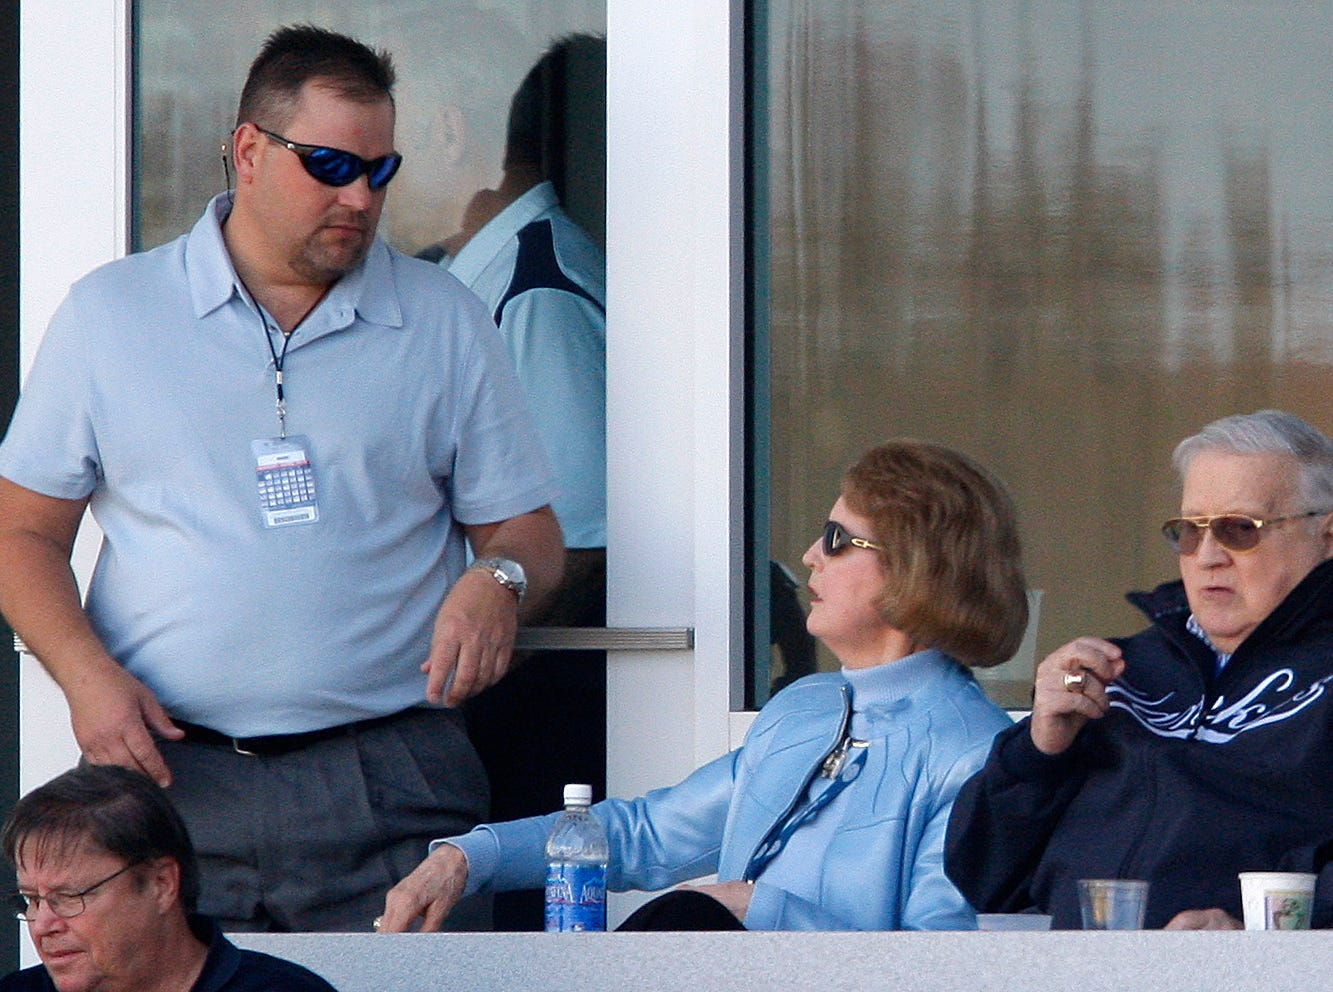 A security guard talks with Joan Steinbrenner as she sits with her husband, George Steinbrenner, right, the Yankees' chairman and principal owner, in the family's private box as they watched the Yankees defeat the Philadelphia Phillies 7-5 in a spring training baseball game at Steinbrenner Field in Tampa, Fla., Monday, March 8, 2010.